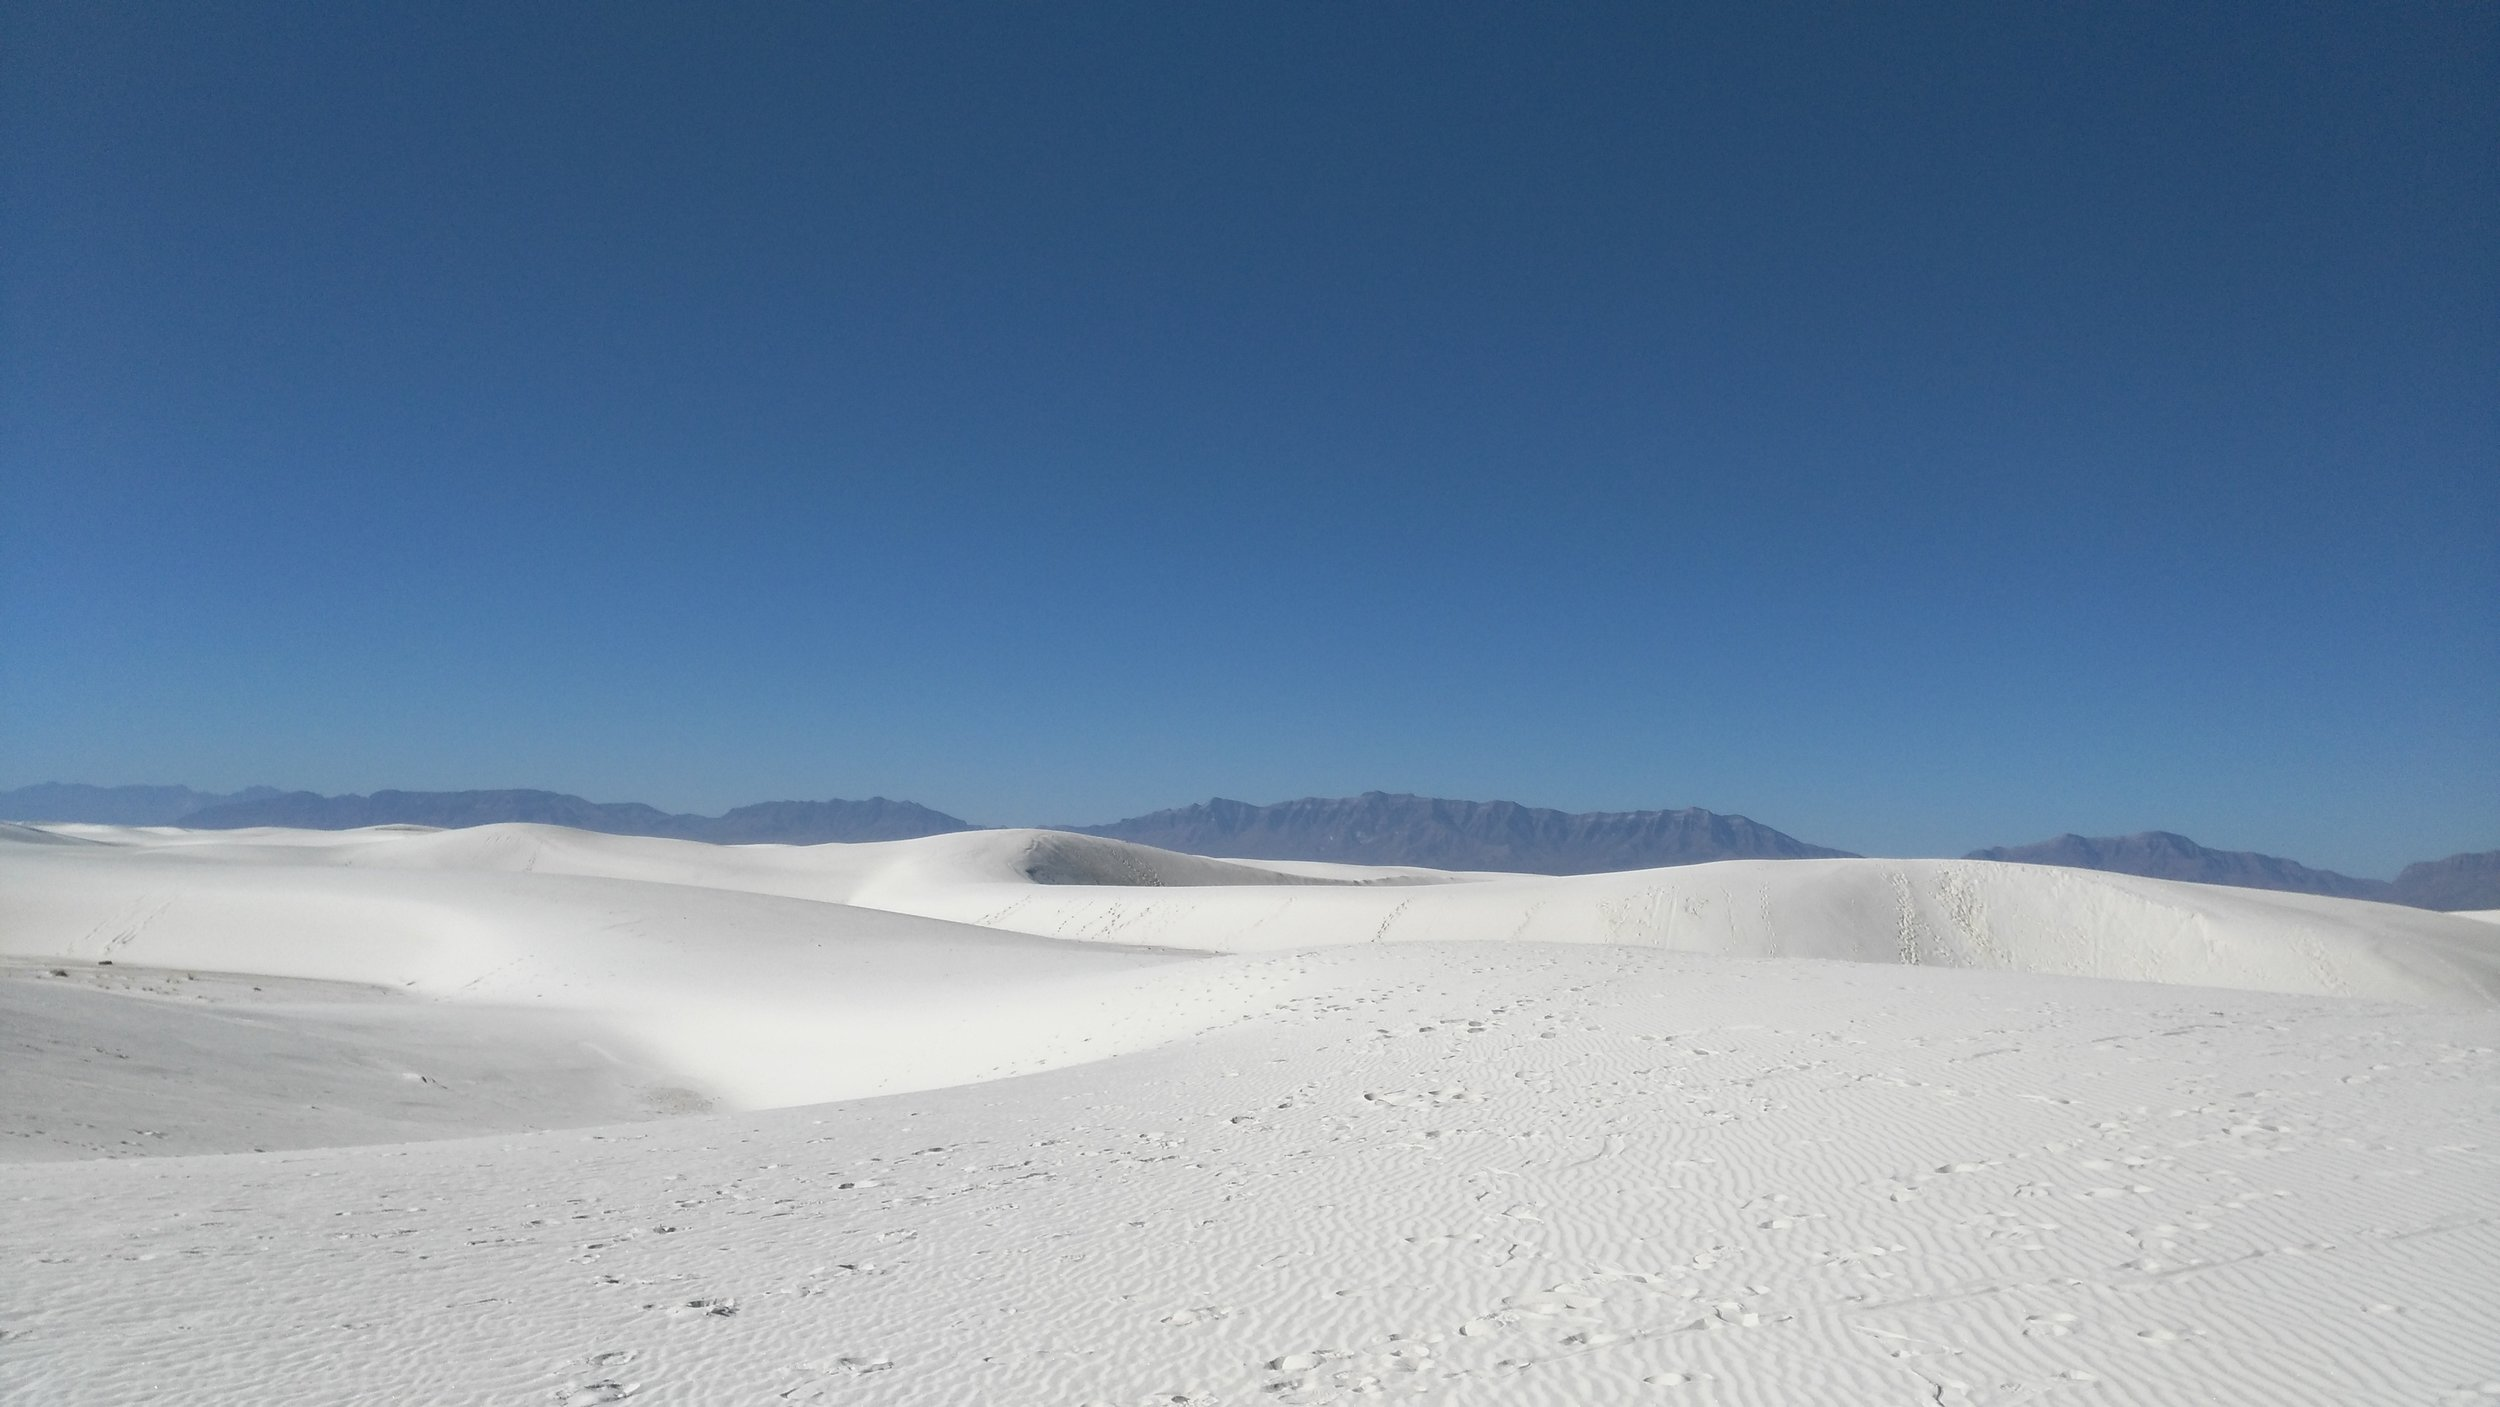 White gypsum dunes at White Sands National Monument